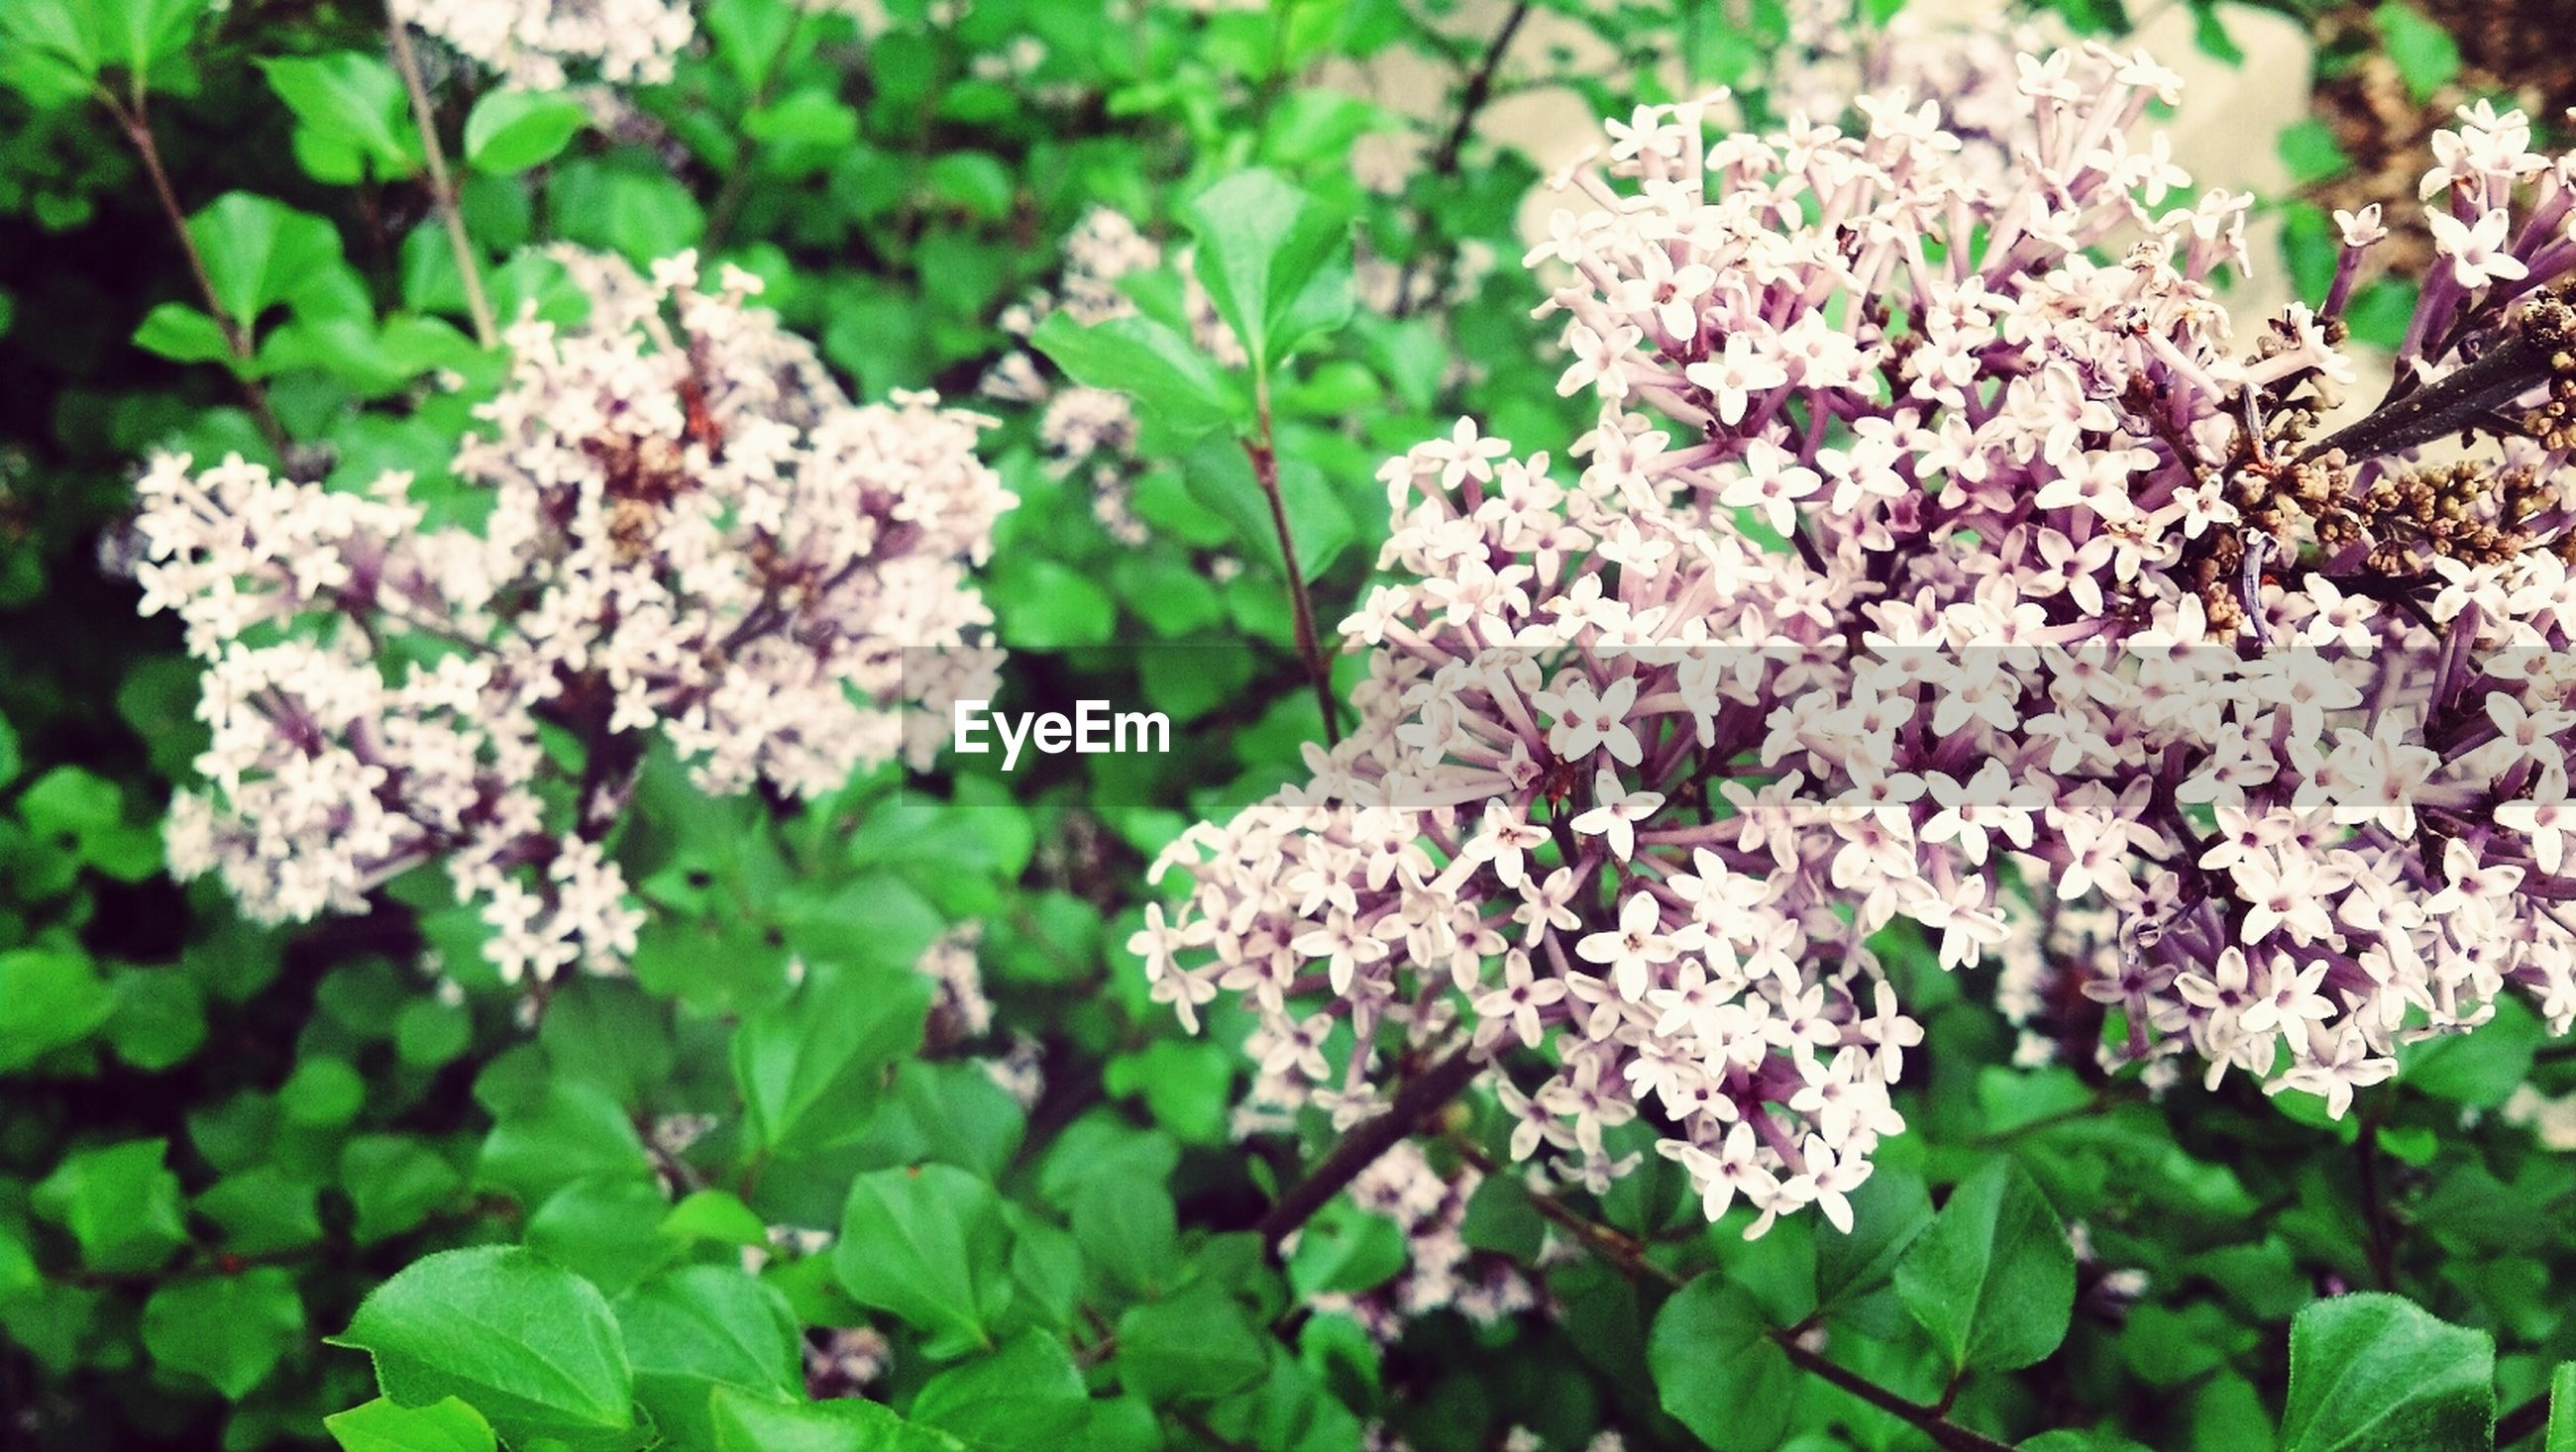 flower, freshness, growth, fragility, beauty in nature, petal, leaf, nature, blooming, plant, flower head, close-up, in bloom, blossom, pink color, green color, focus on foreground, park - man made space, outdoors, high angle view